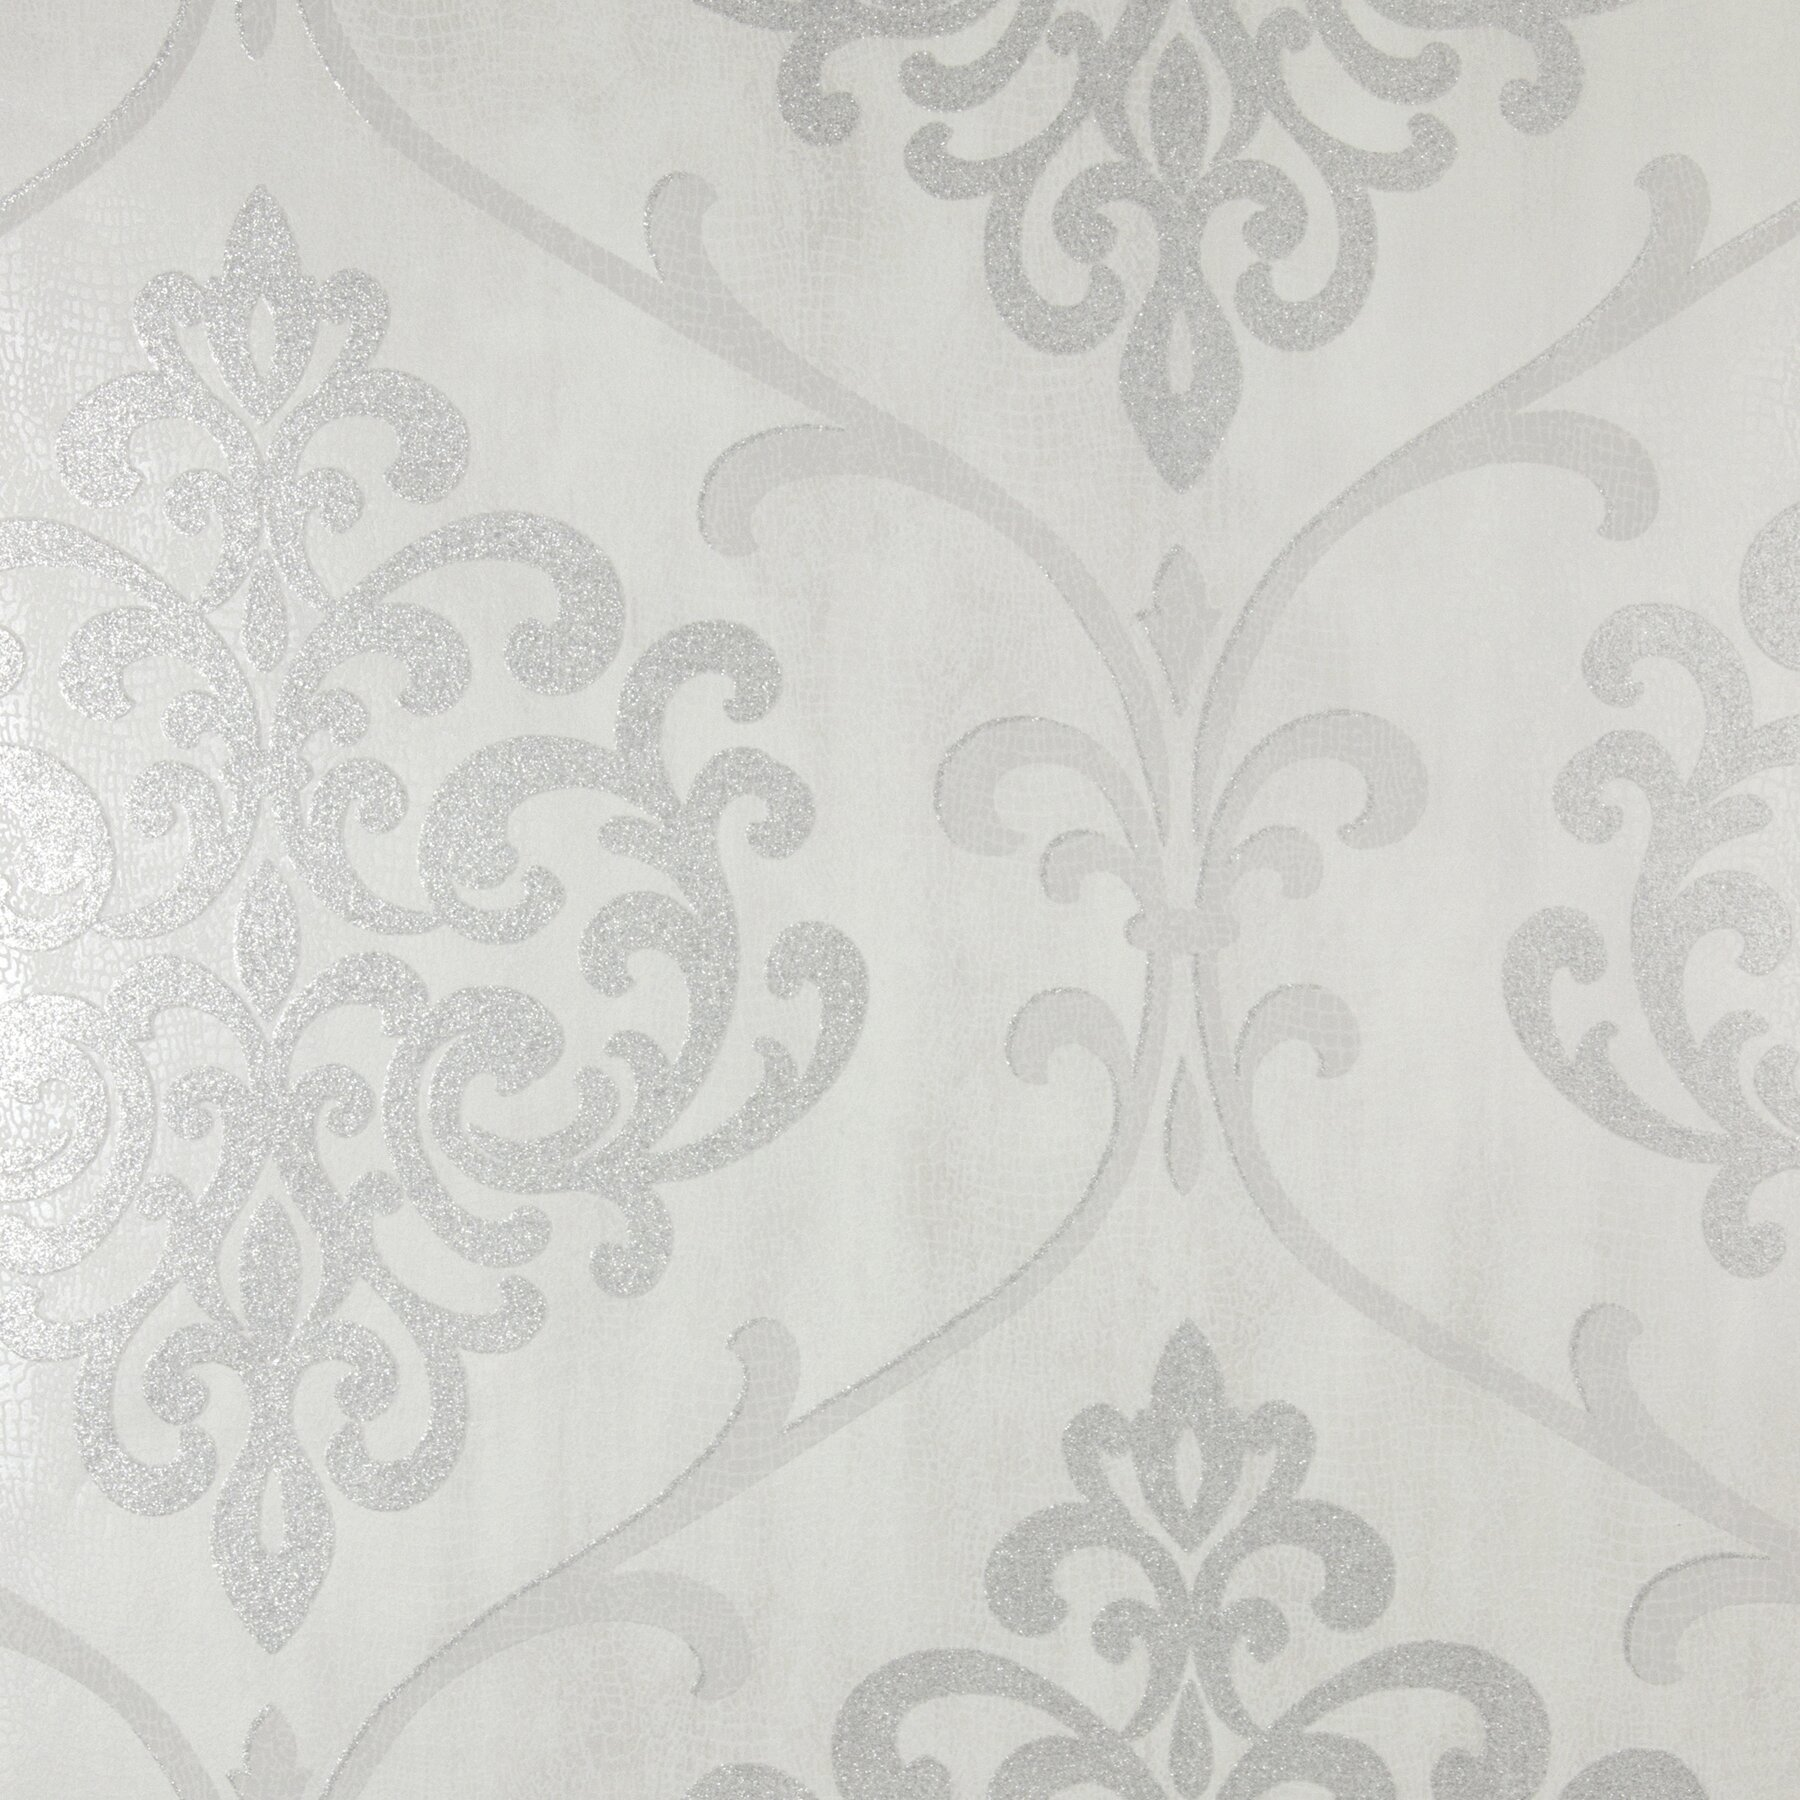 Brewster home fashions sparkle ambrosia glitter 33 39 x 20 5 for 3d embossed wallpaper